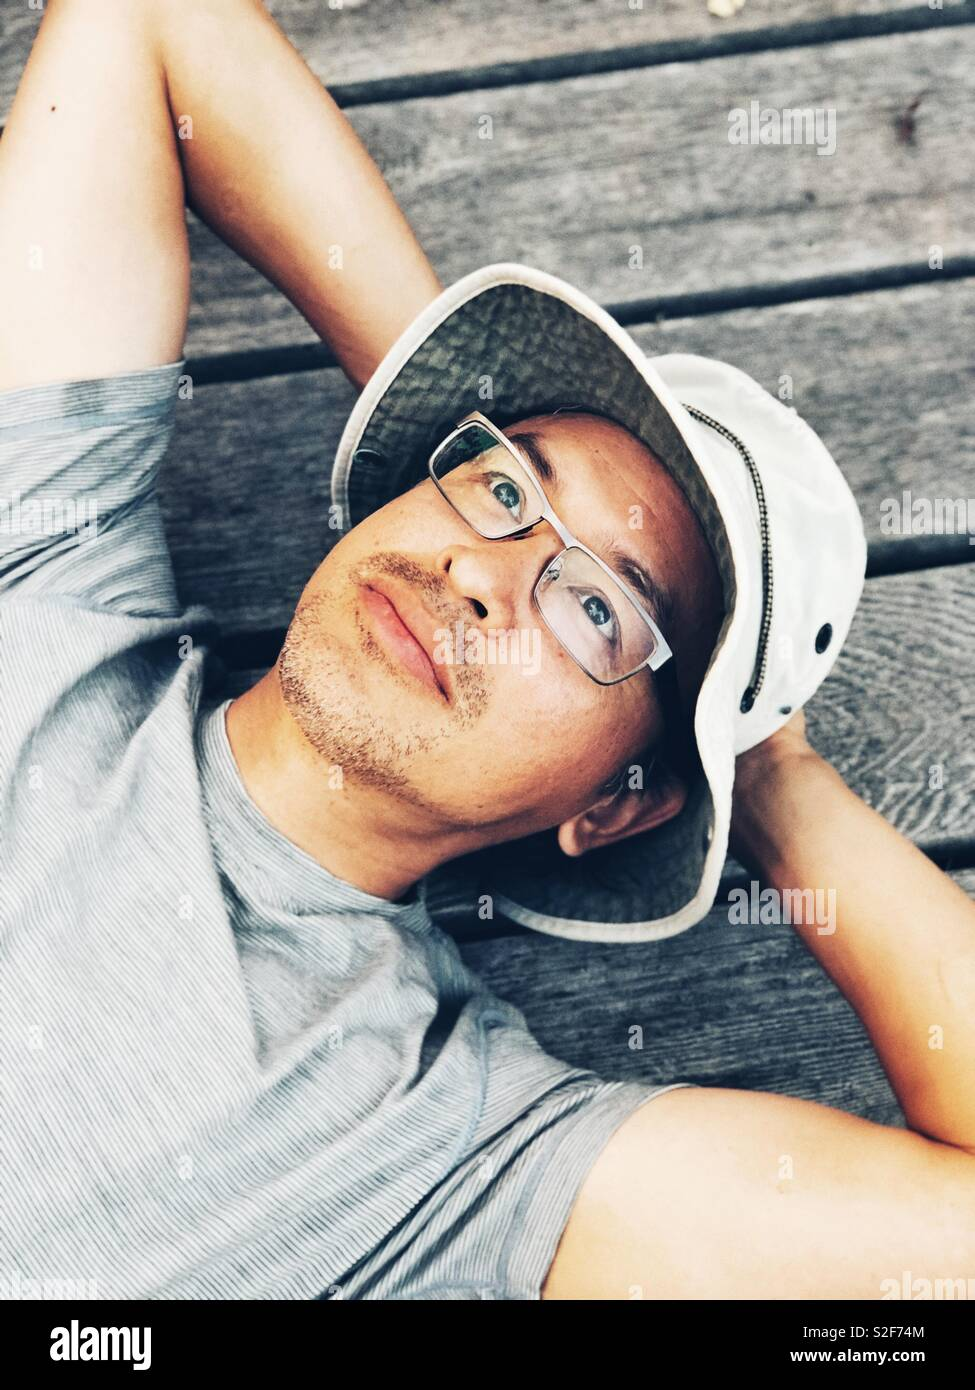 Middle aged Asian man wearing bucket hat and glasses looking up laying on camping platform in Canadian wilderness - Stock Image